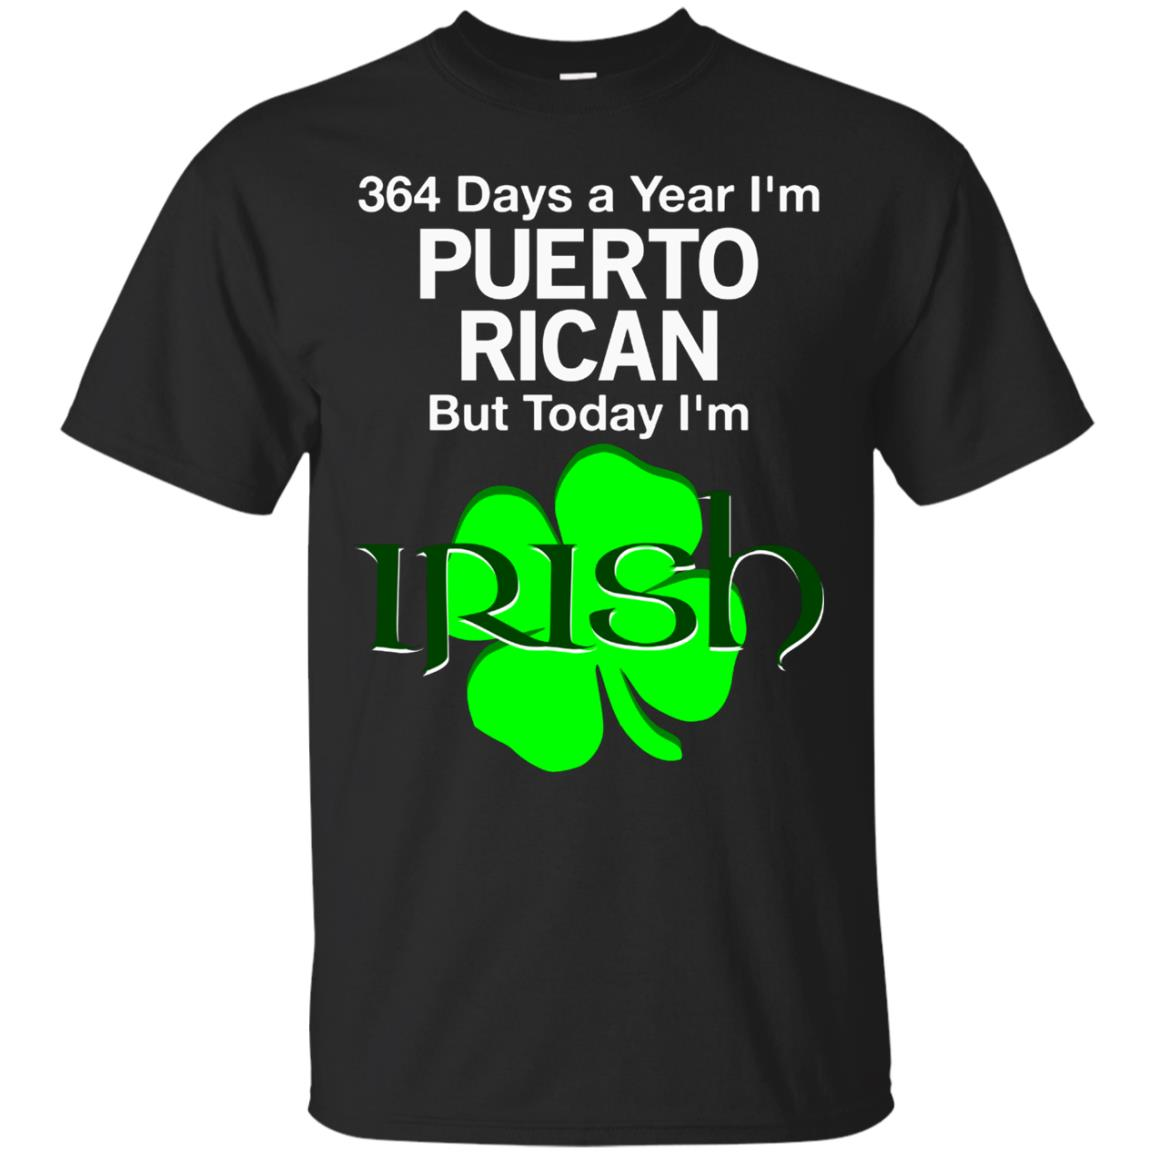 364 Days A Year I'm Puerto Rican, Today I'm Irish T Shirt 99promocode